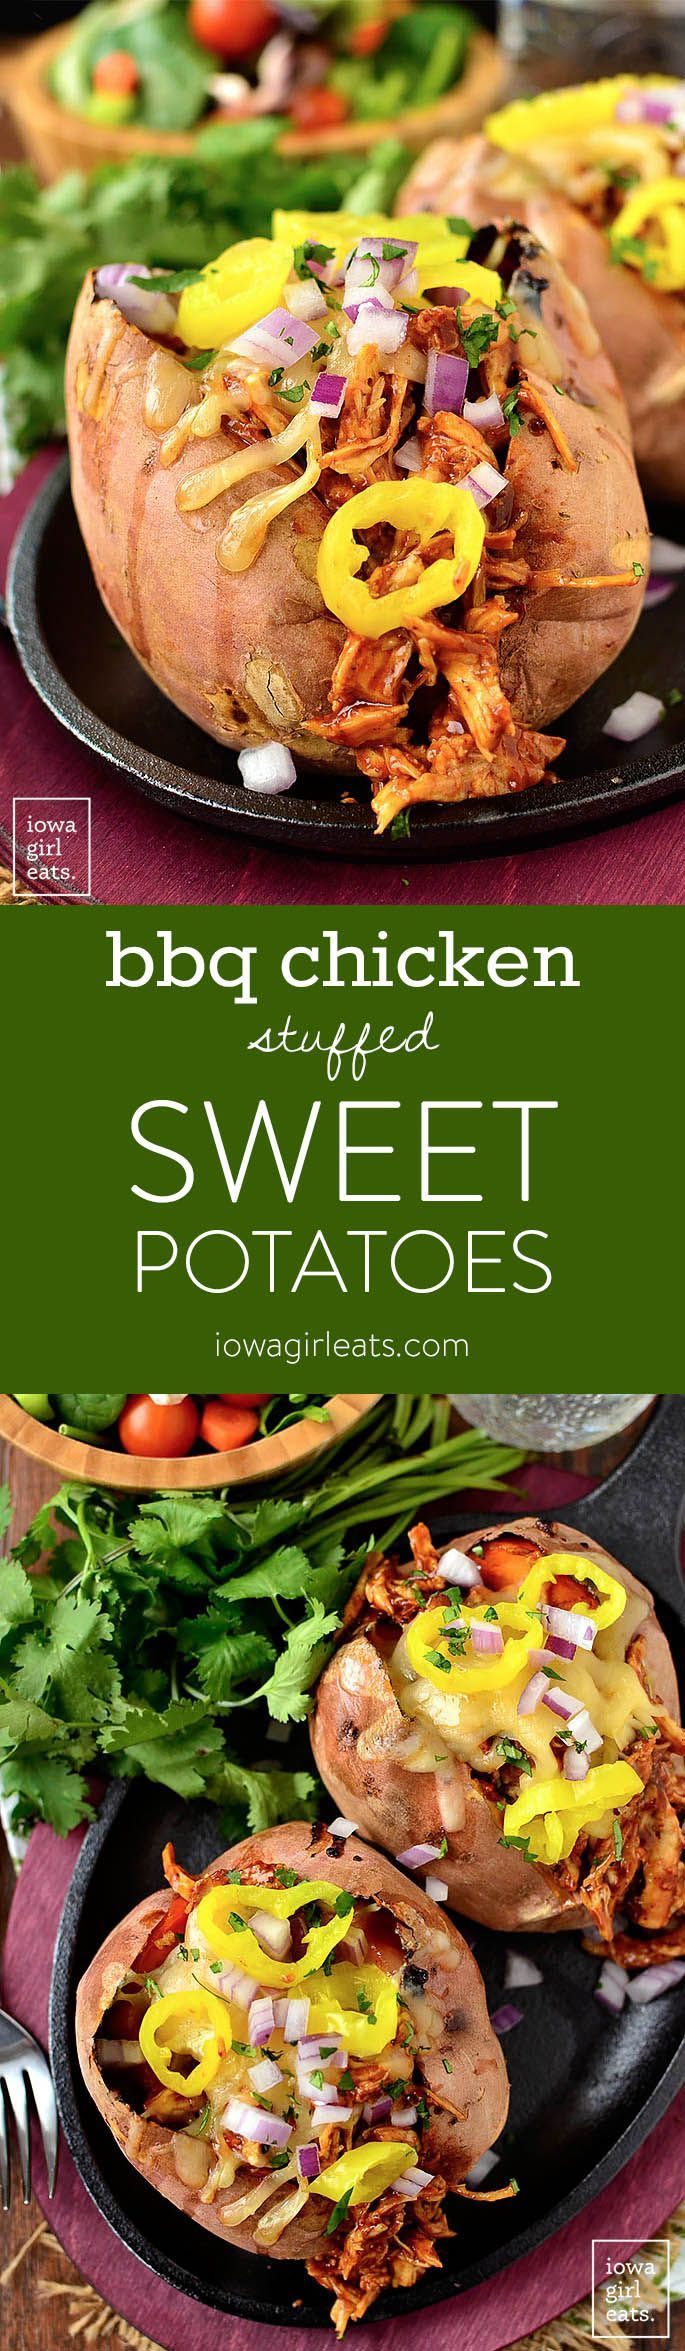 BBQ Chicken Stuffed Sweet Potatoes call for just 4 main ingredients and are absolutely mouthwatering. Leftovers are just as tasty too! | iowagirleats.com